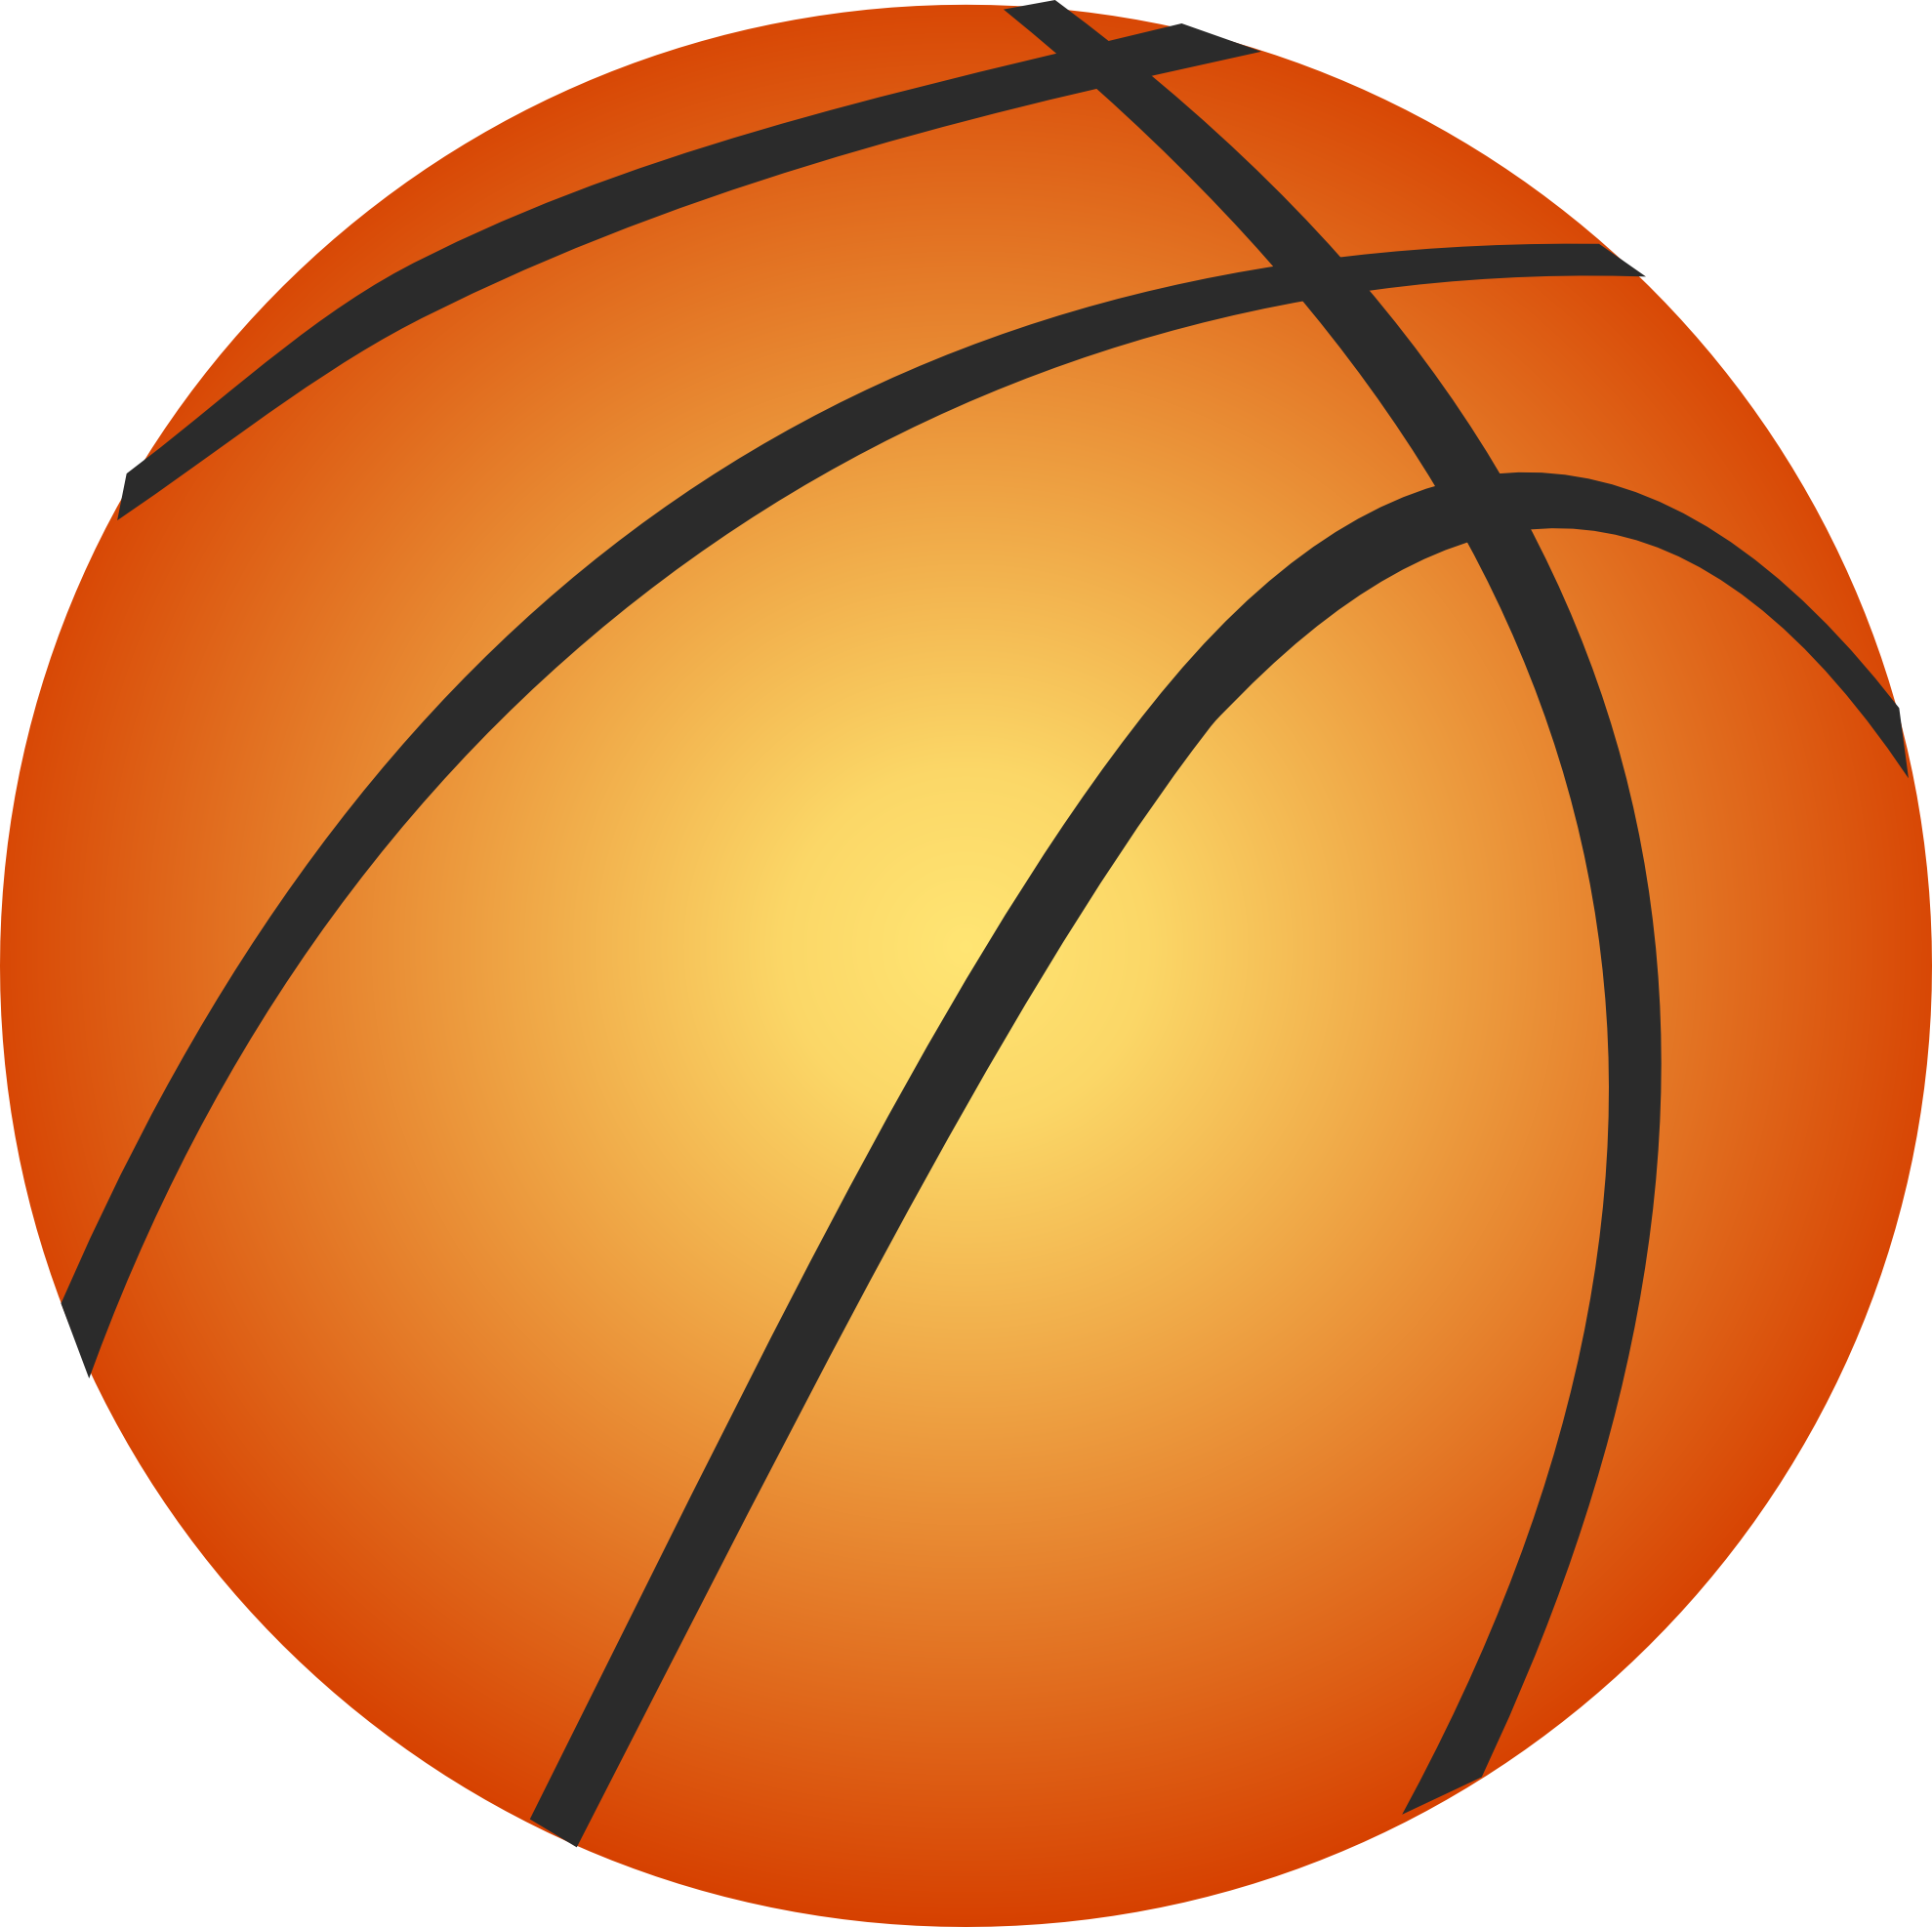 Race clipart athletic meet. Basketball ball clip art